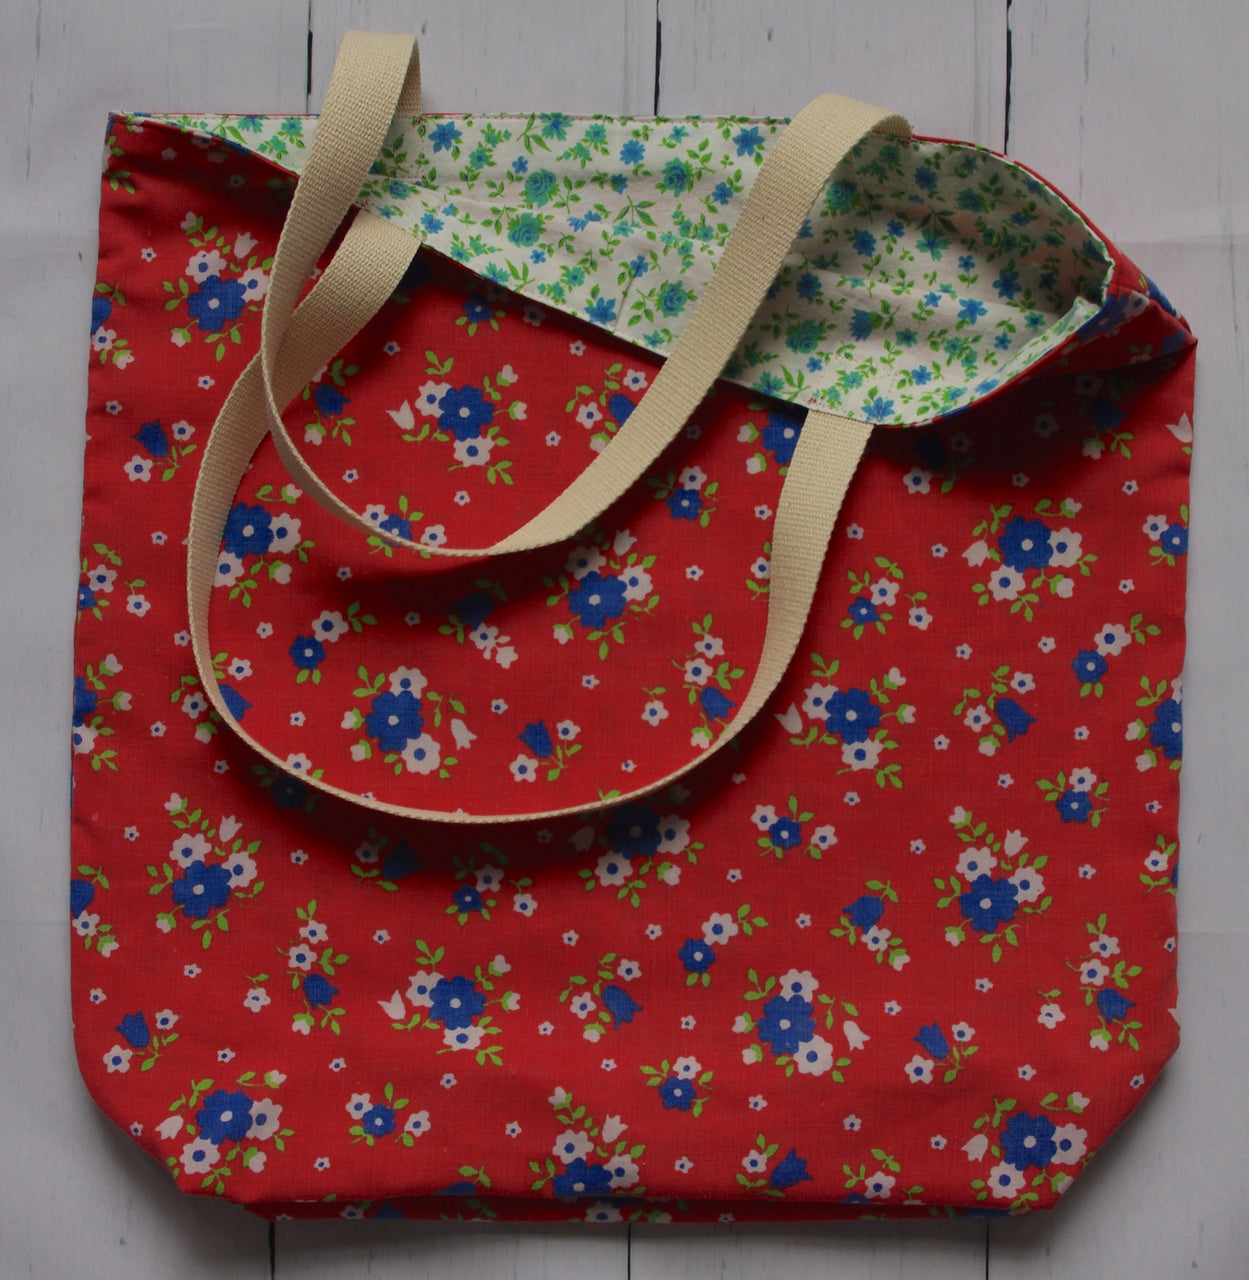 ditzy-floral-red-hilary-hope-tote-bag-exterior-with-glimpse-of-interior